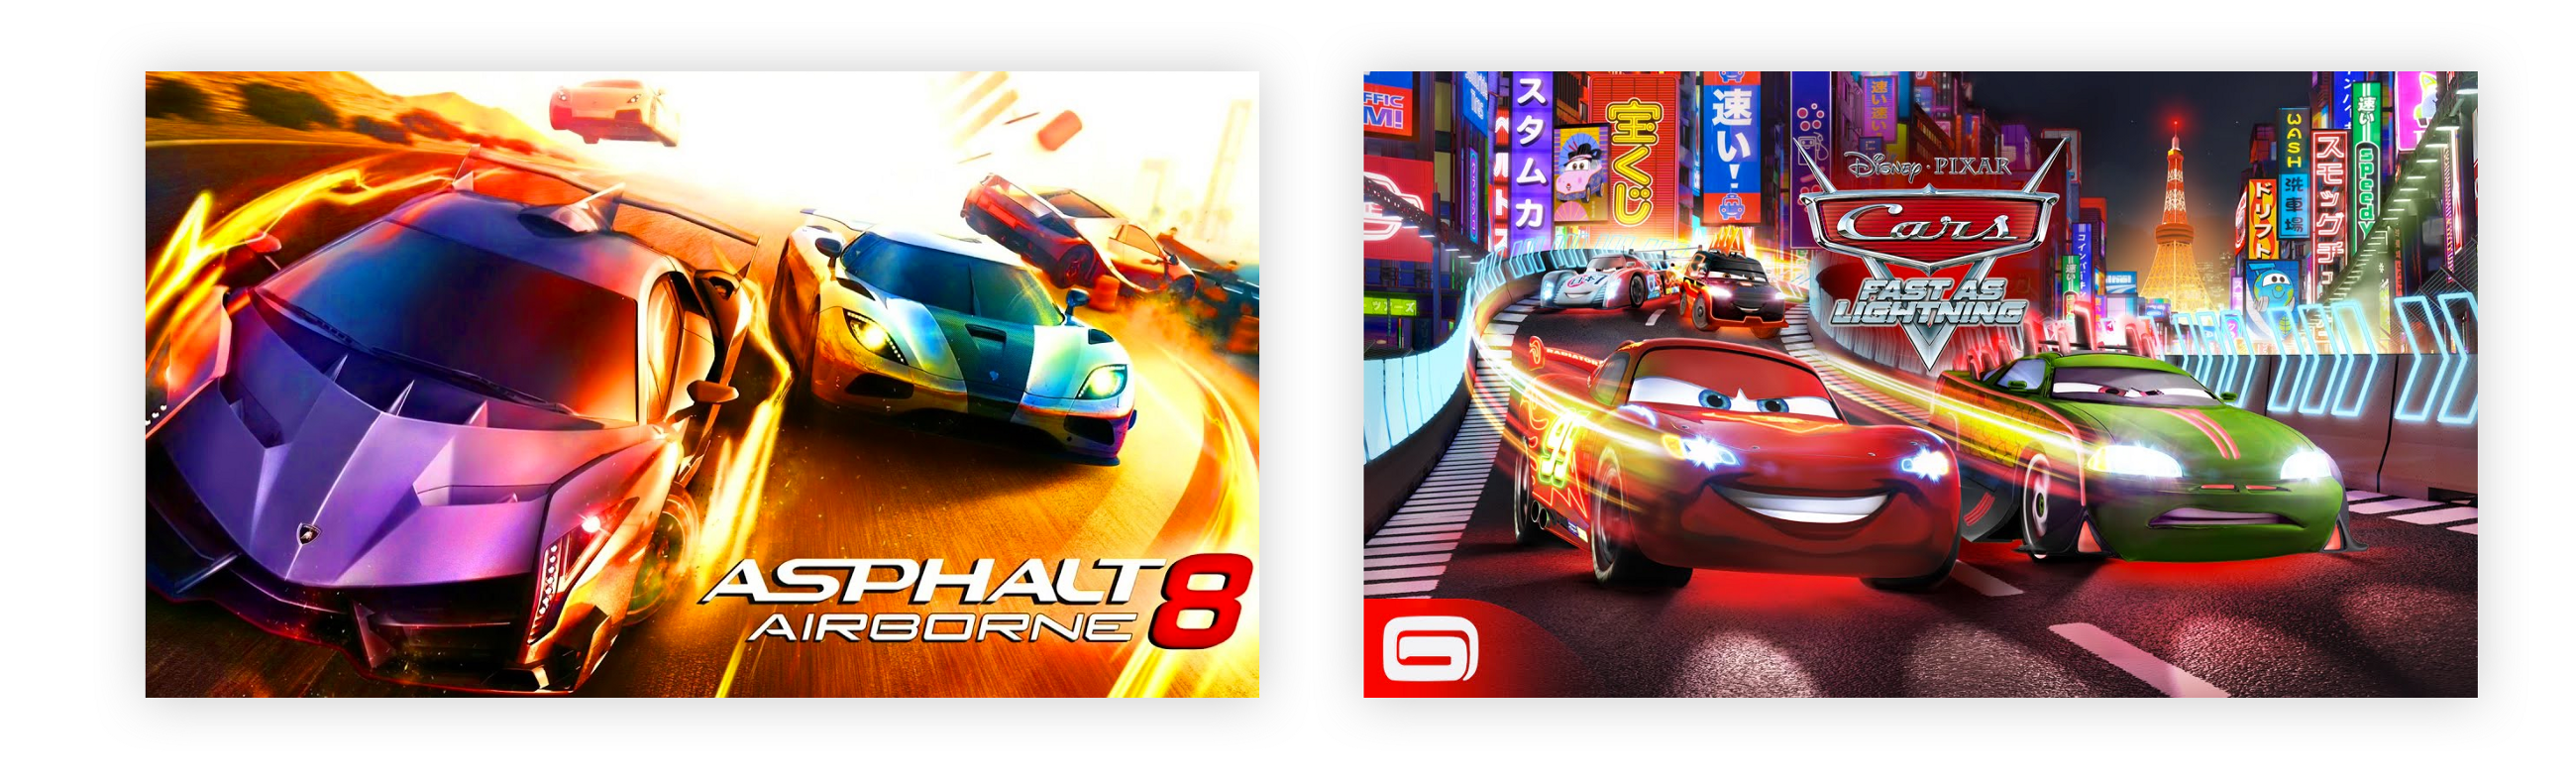 Cars Pixar Logo Png Cars 3 Brings Back Heart To The Cars Franchise